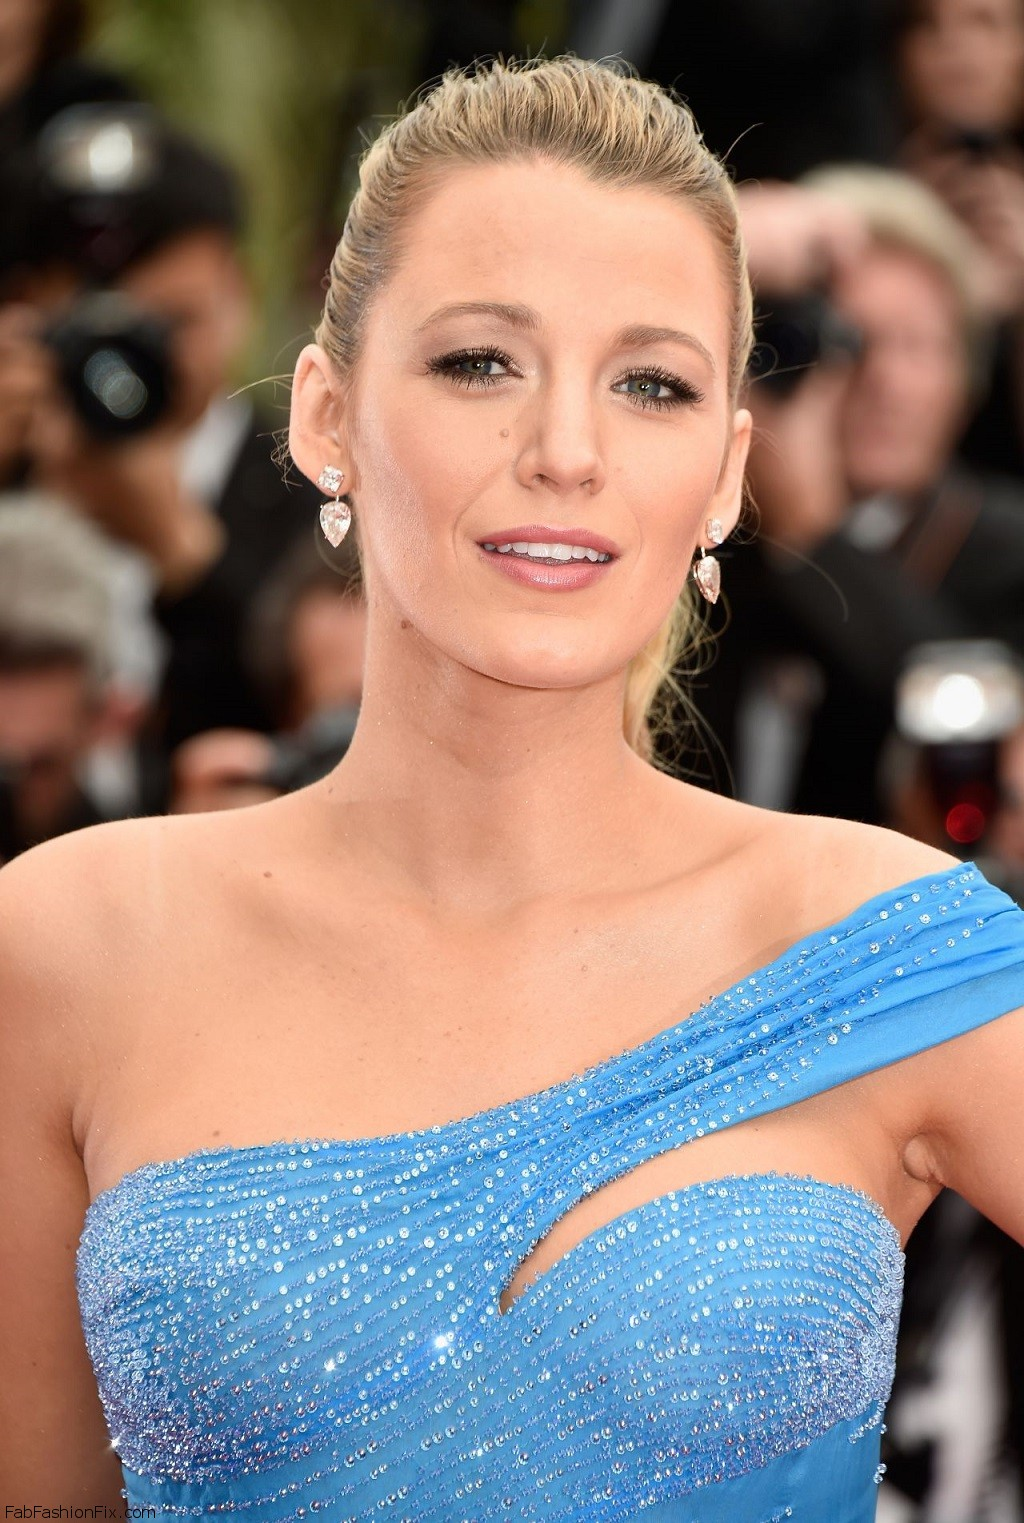 blake-lively-the-bfg-premiere-cannes-film-festival-in-cannes-5-14-2016-10